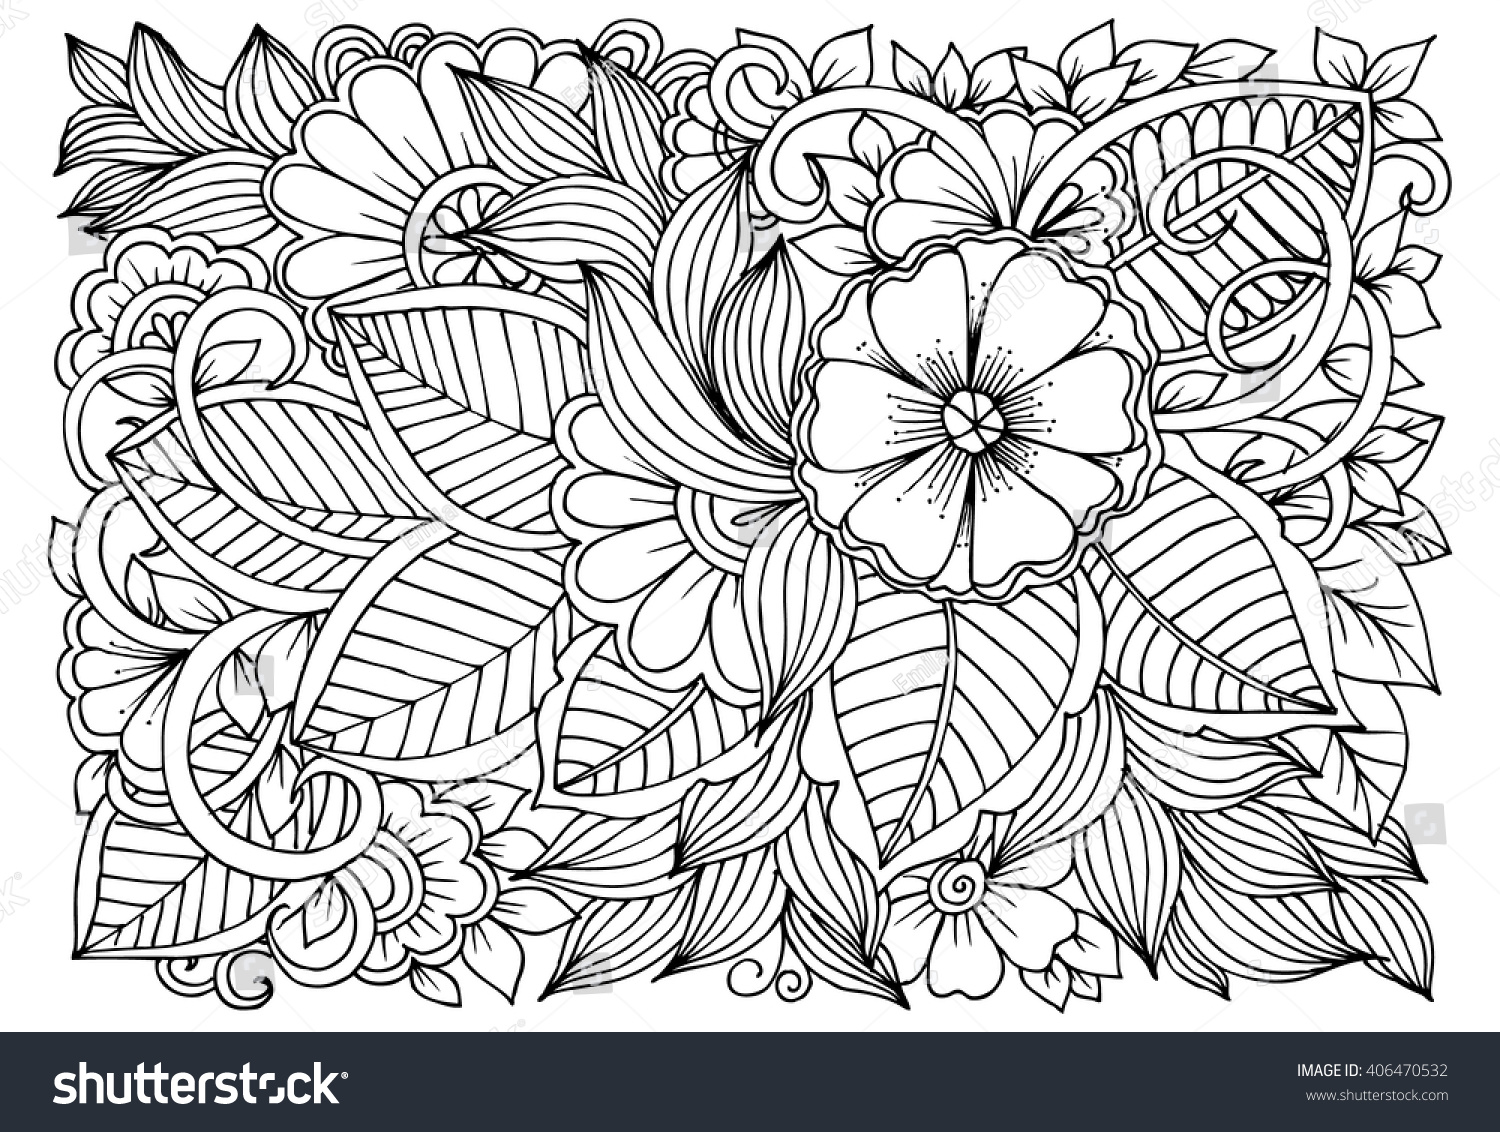 Printable Relaxing Coloring Pages